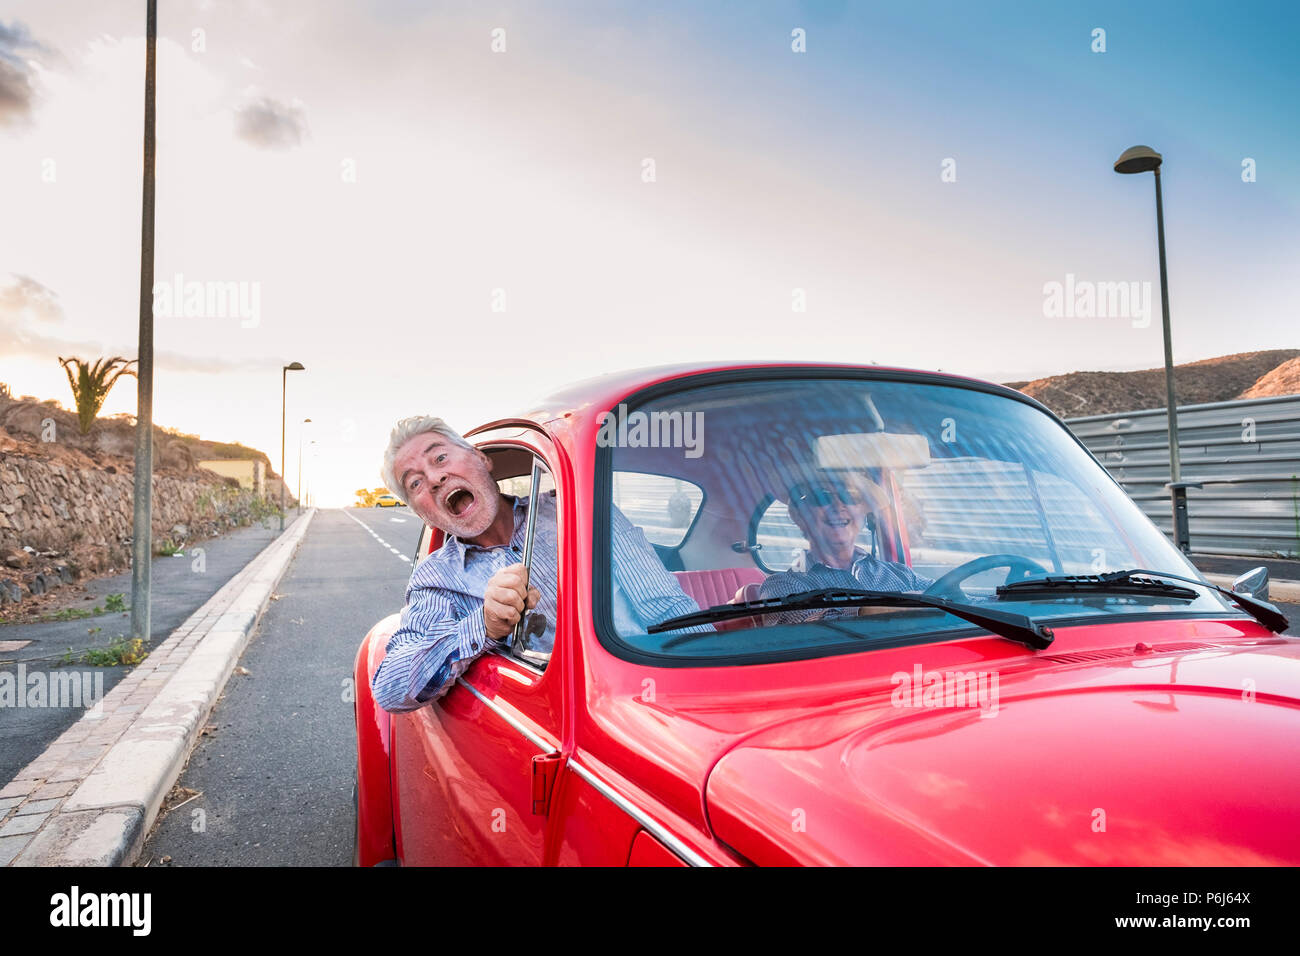 nice beautiful senior adult couple traveling together while the woman drive and the man shout for scare or for craziness. happiness and joy together f - Stock Image